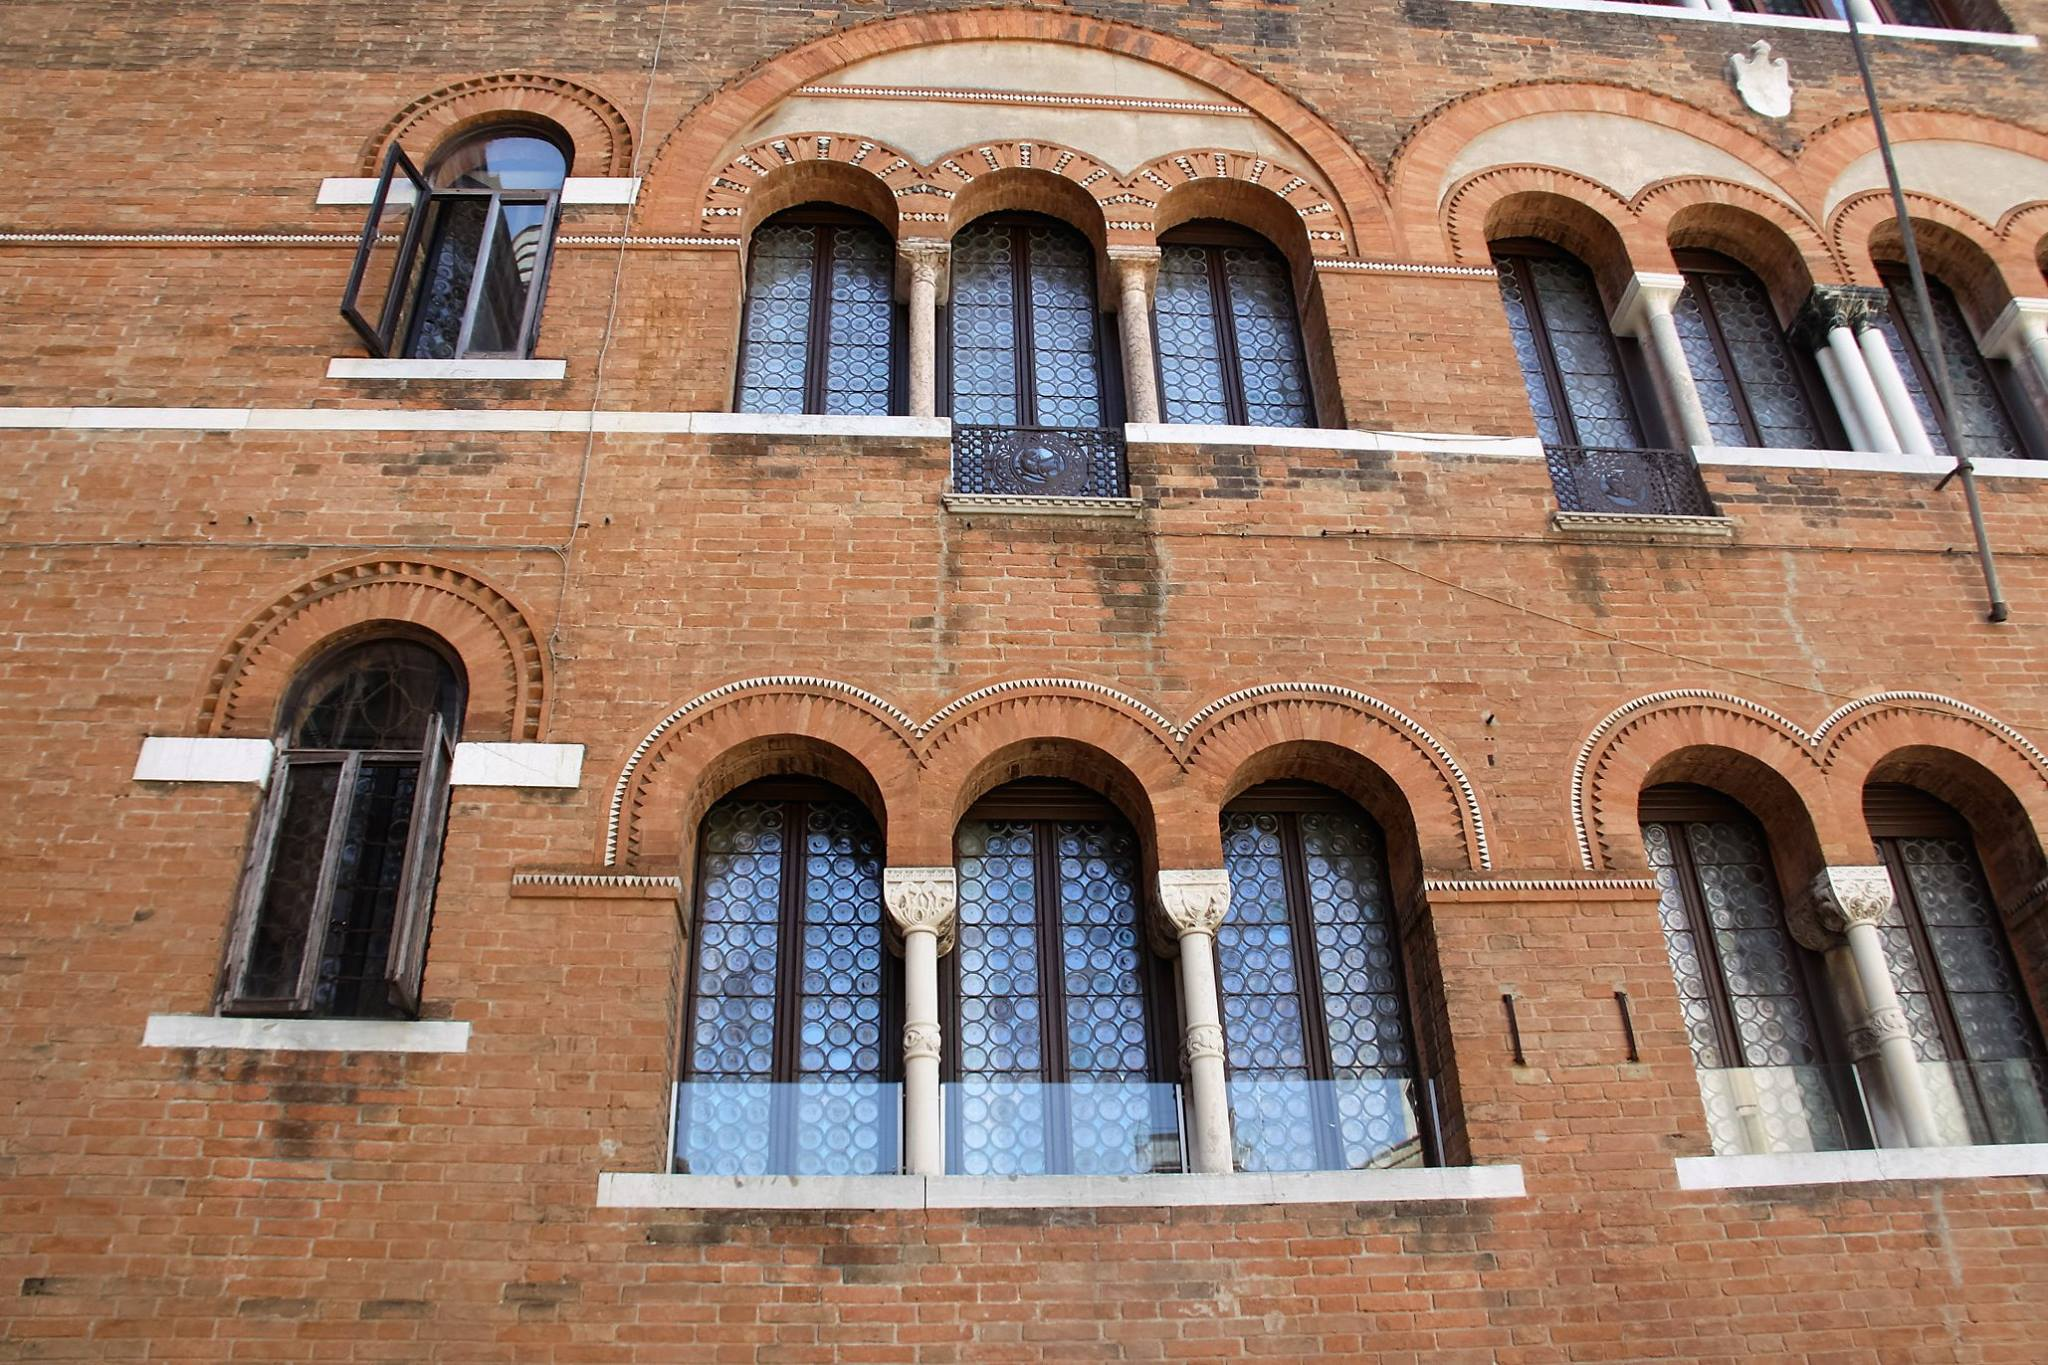 Cool Windows in Venice